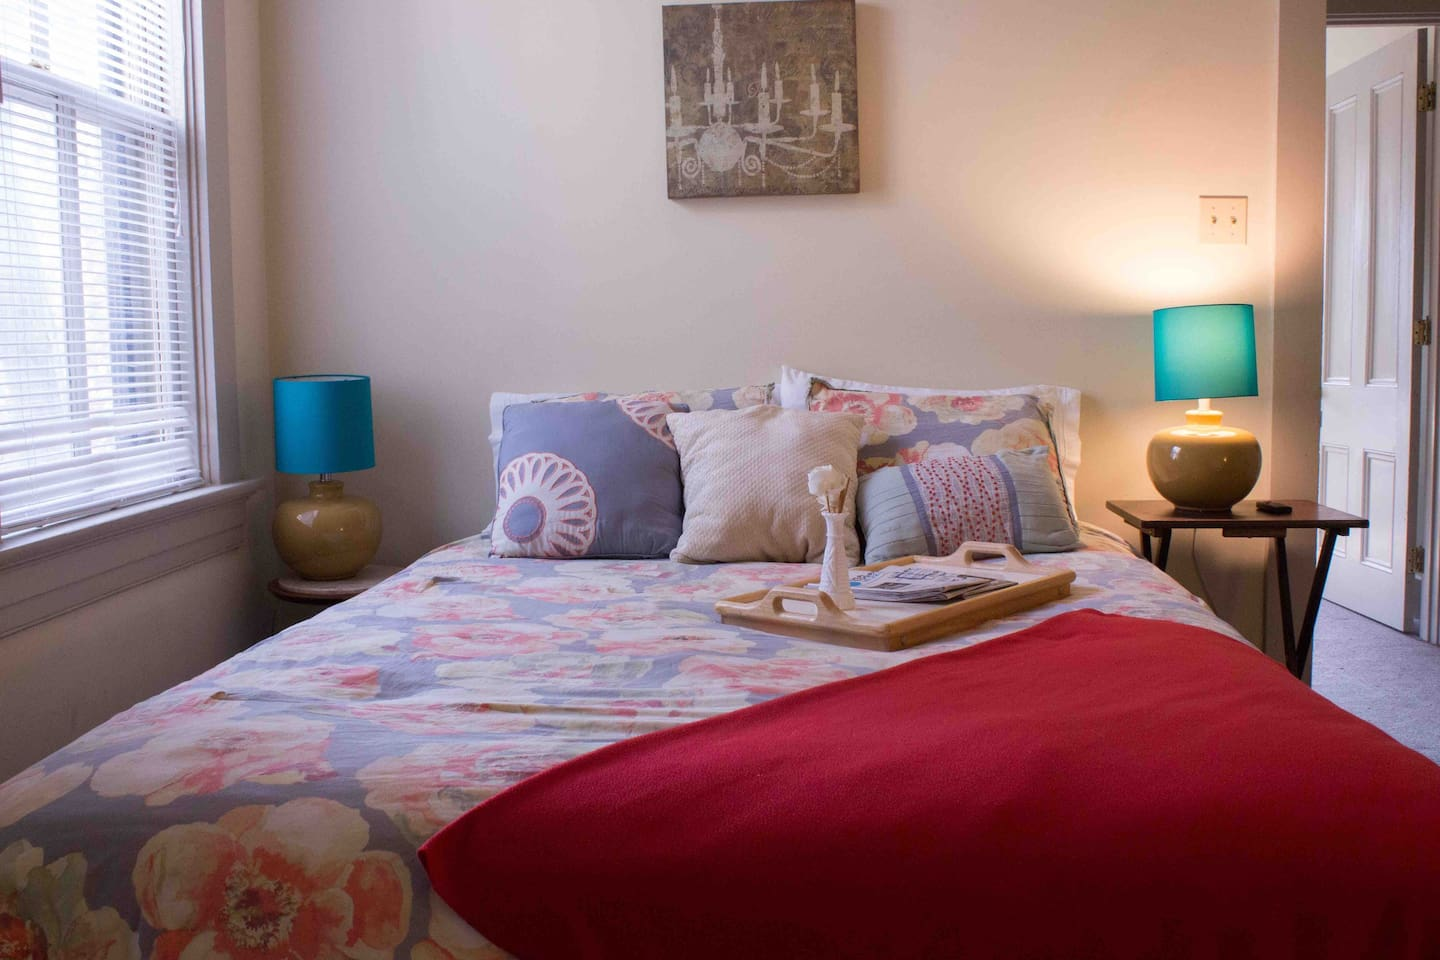 Welcome to The Victor Villa in the Benton Park neighborhood of St. Louis, MO! We are within walking distance of several local restaurants, the Anheuser-Busch Brewery and antique shops! We'd love to have you stay in our cute and cozy home:)